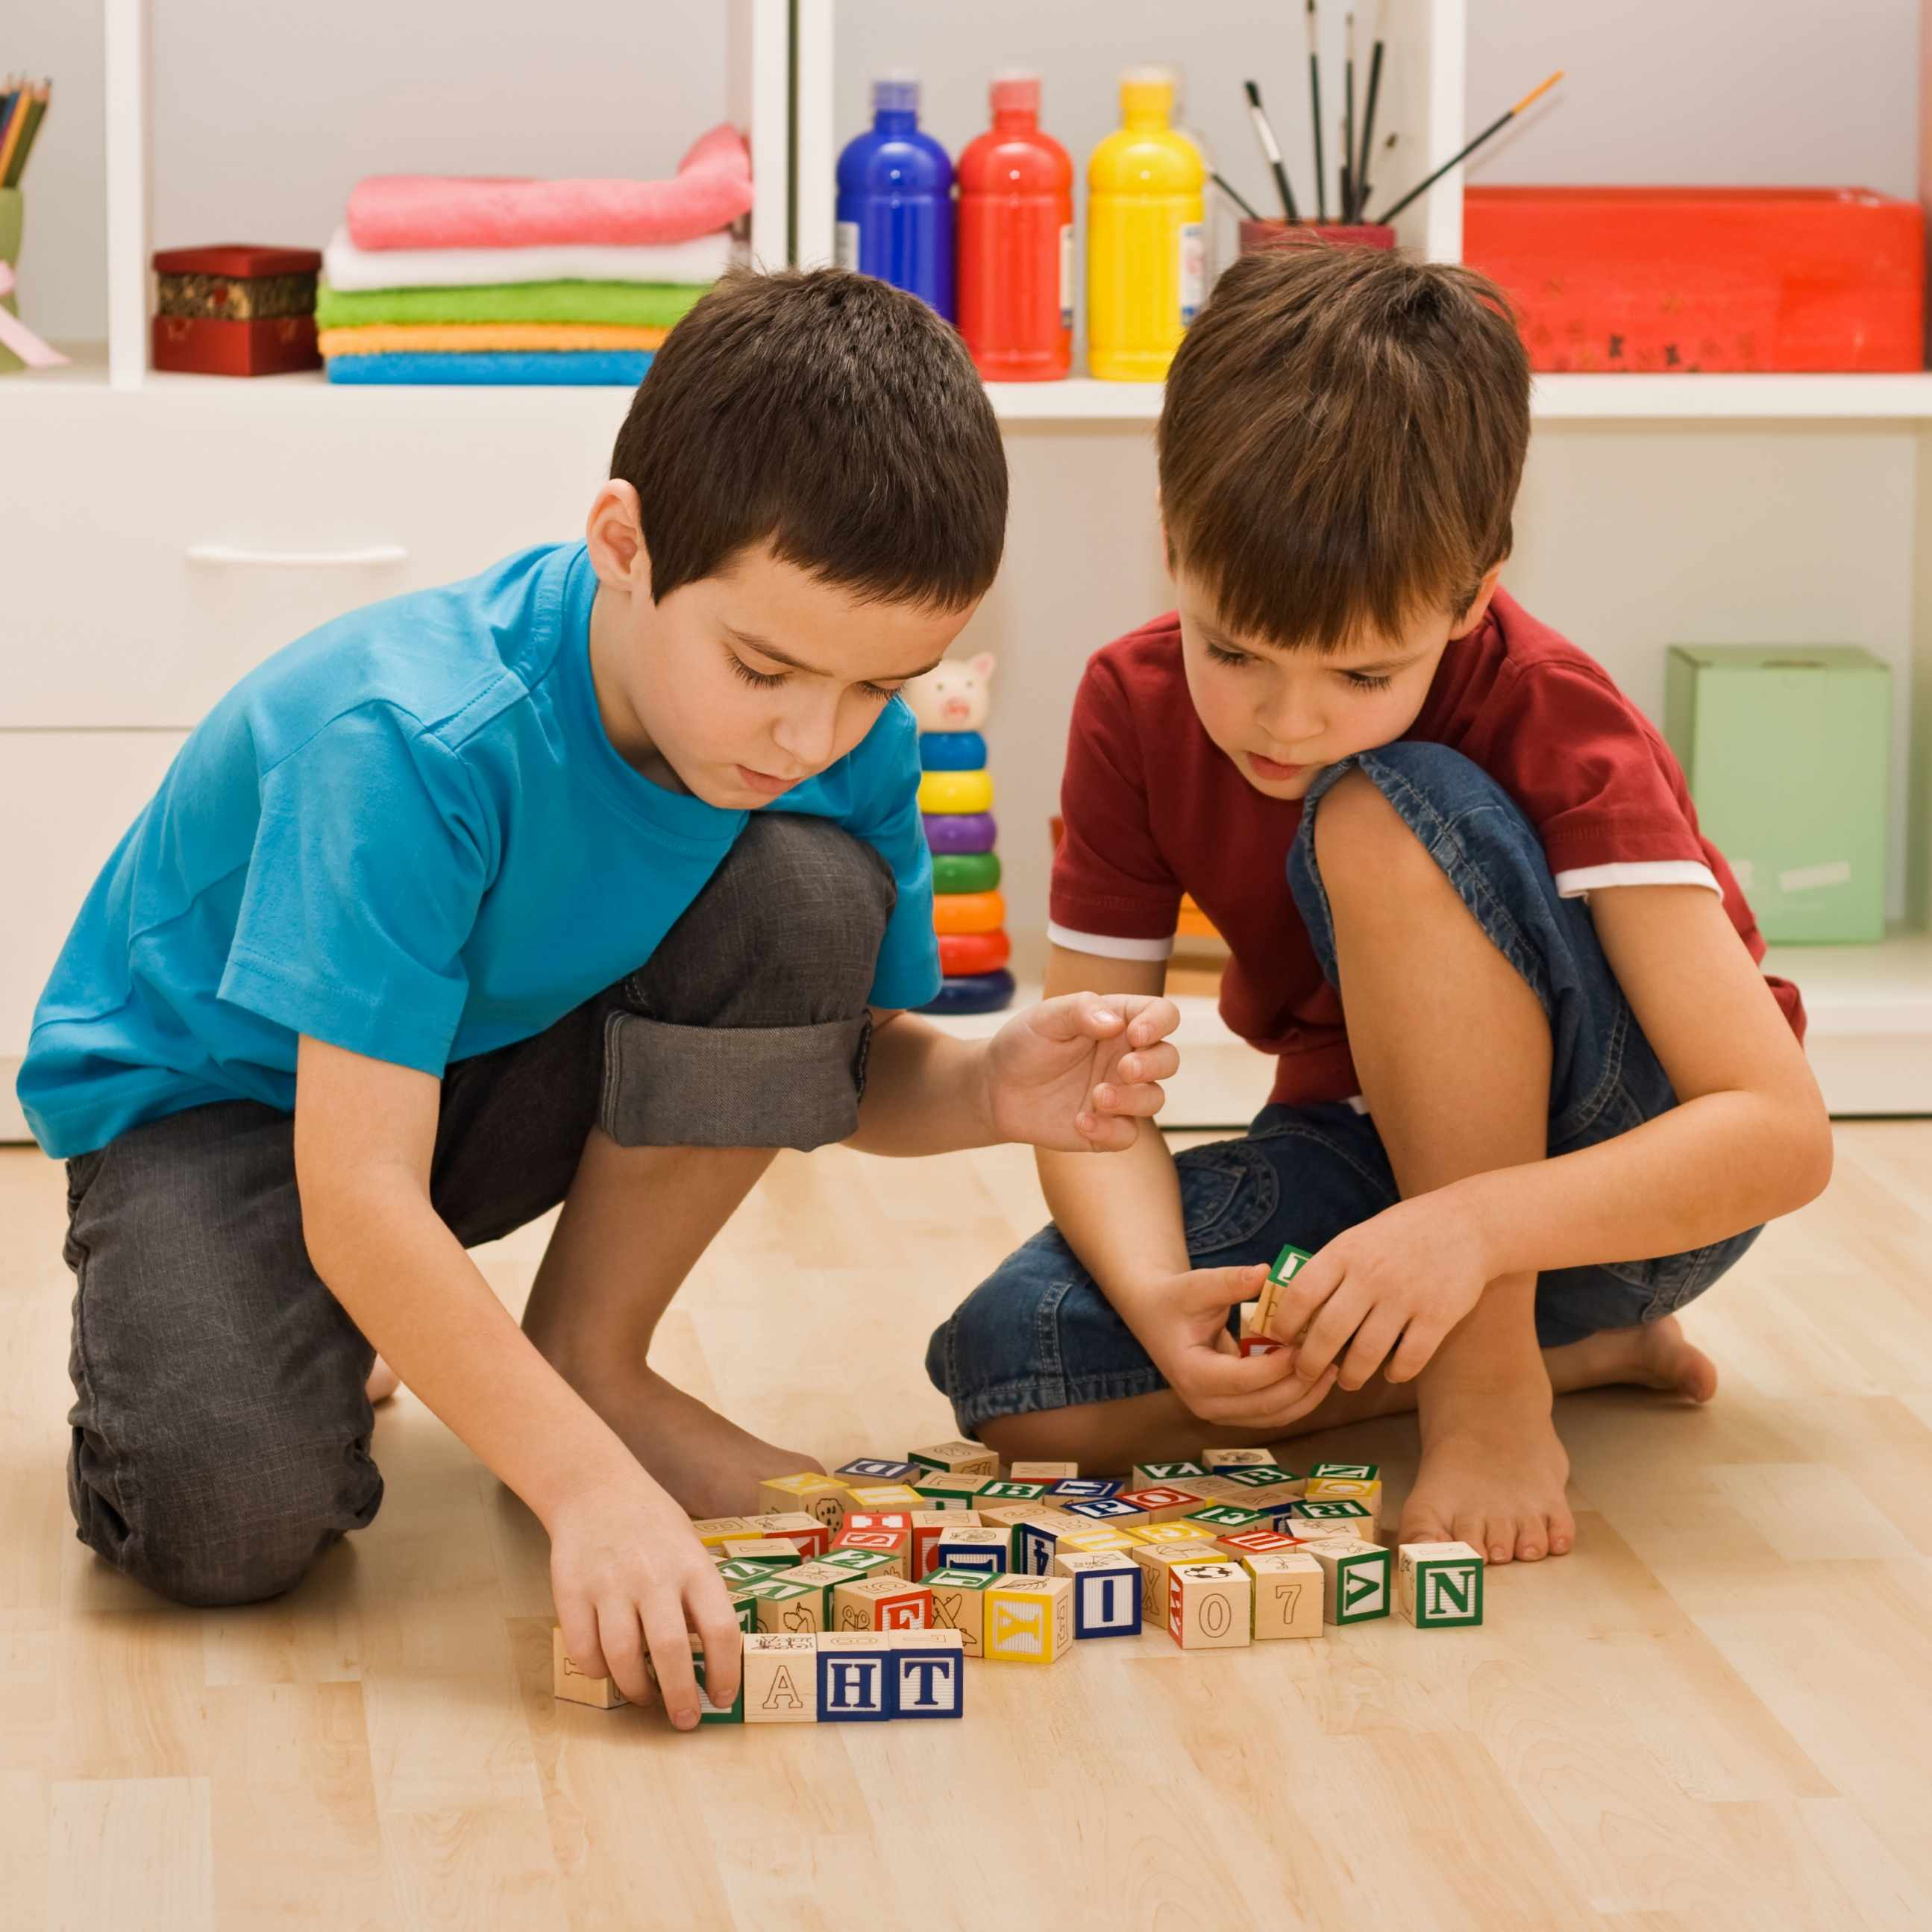 Two little boys playing with blocks on the floor